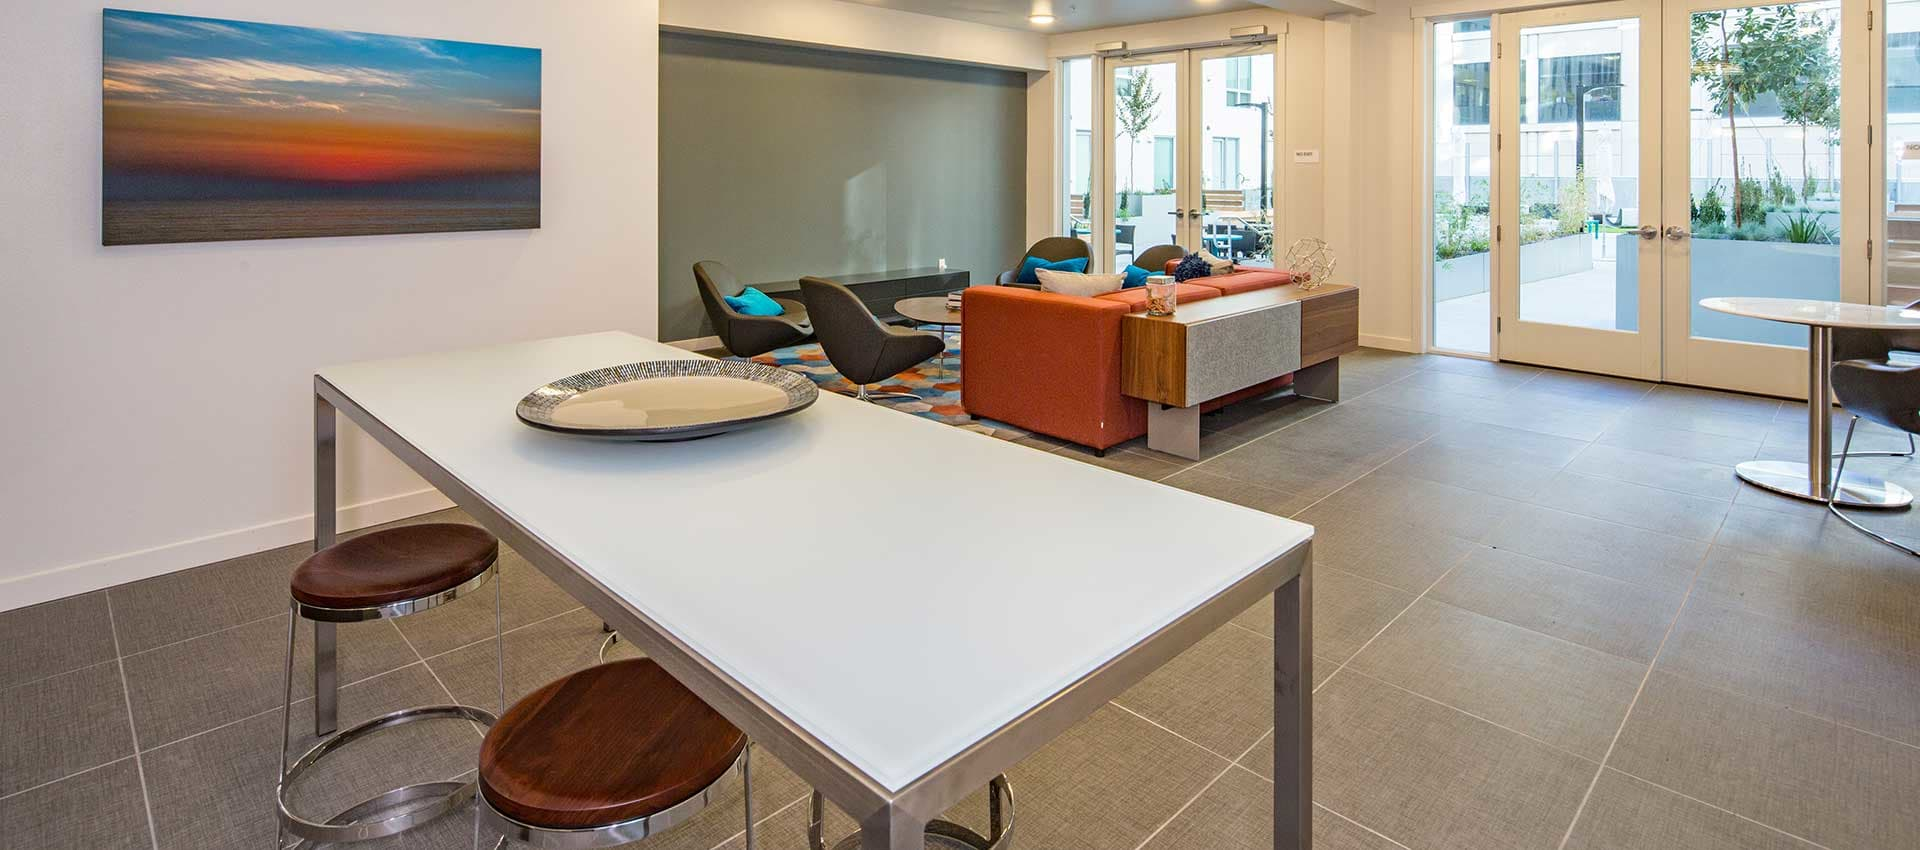 Resident lounge at EVIVA Midtown